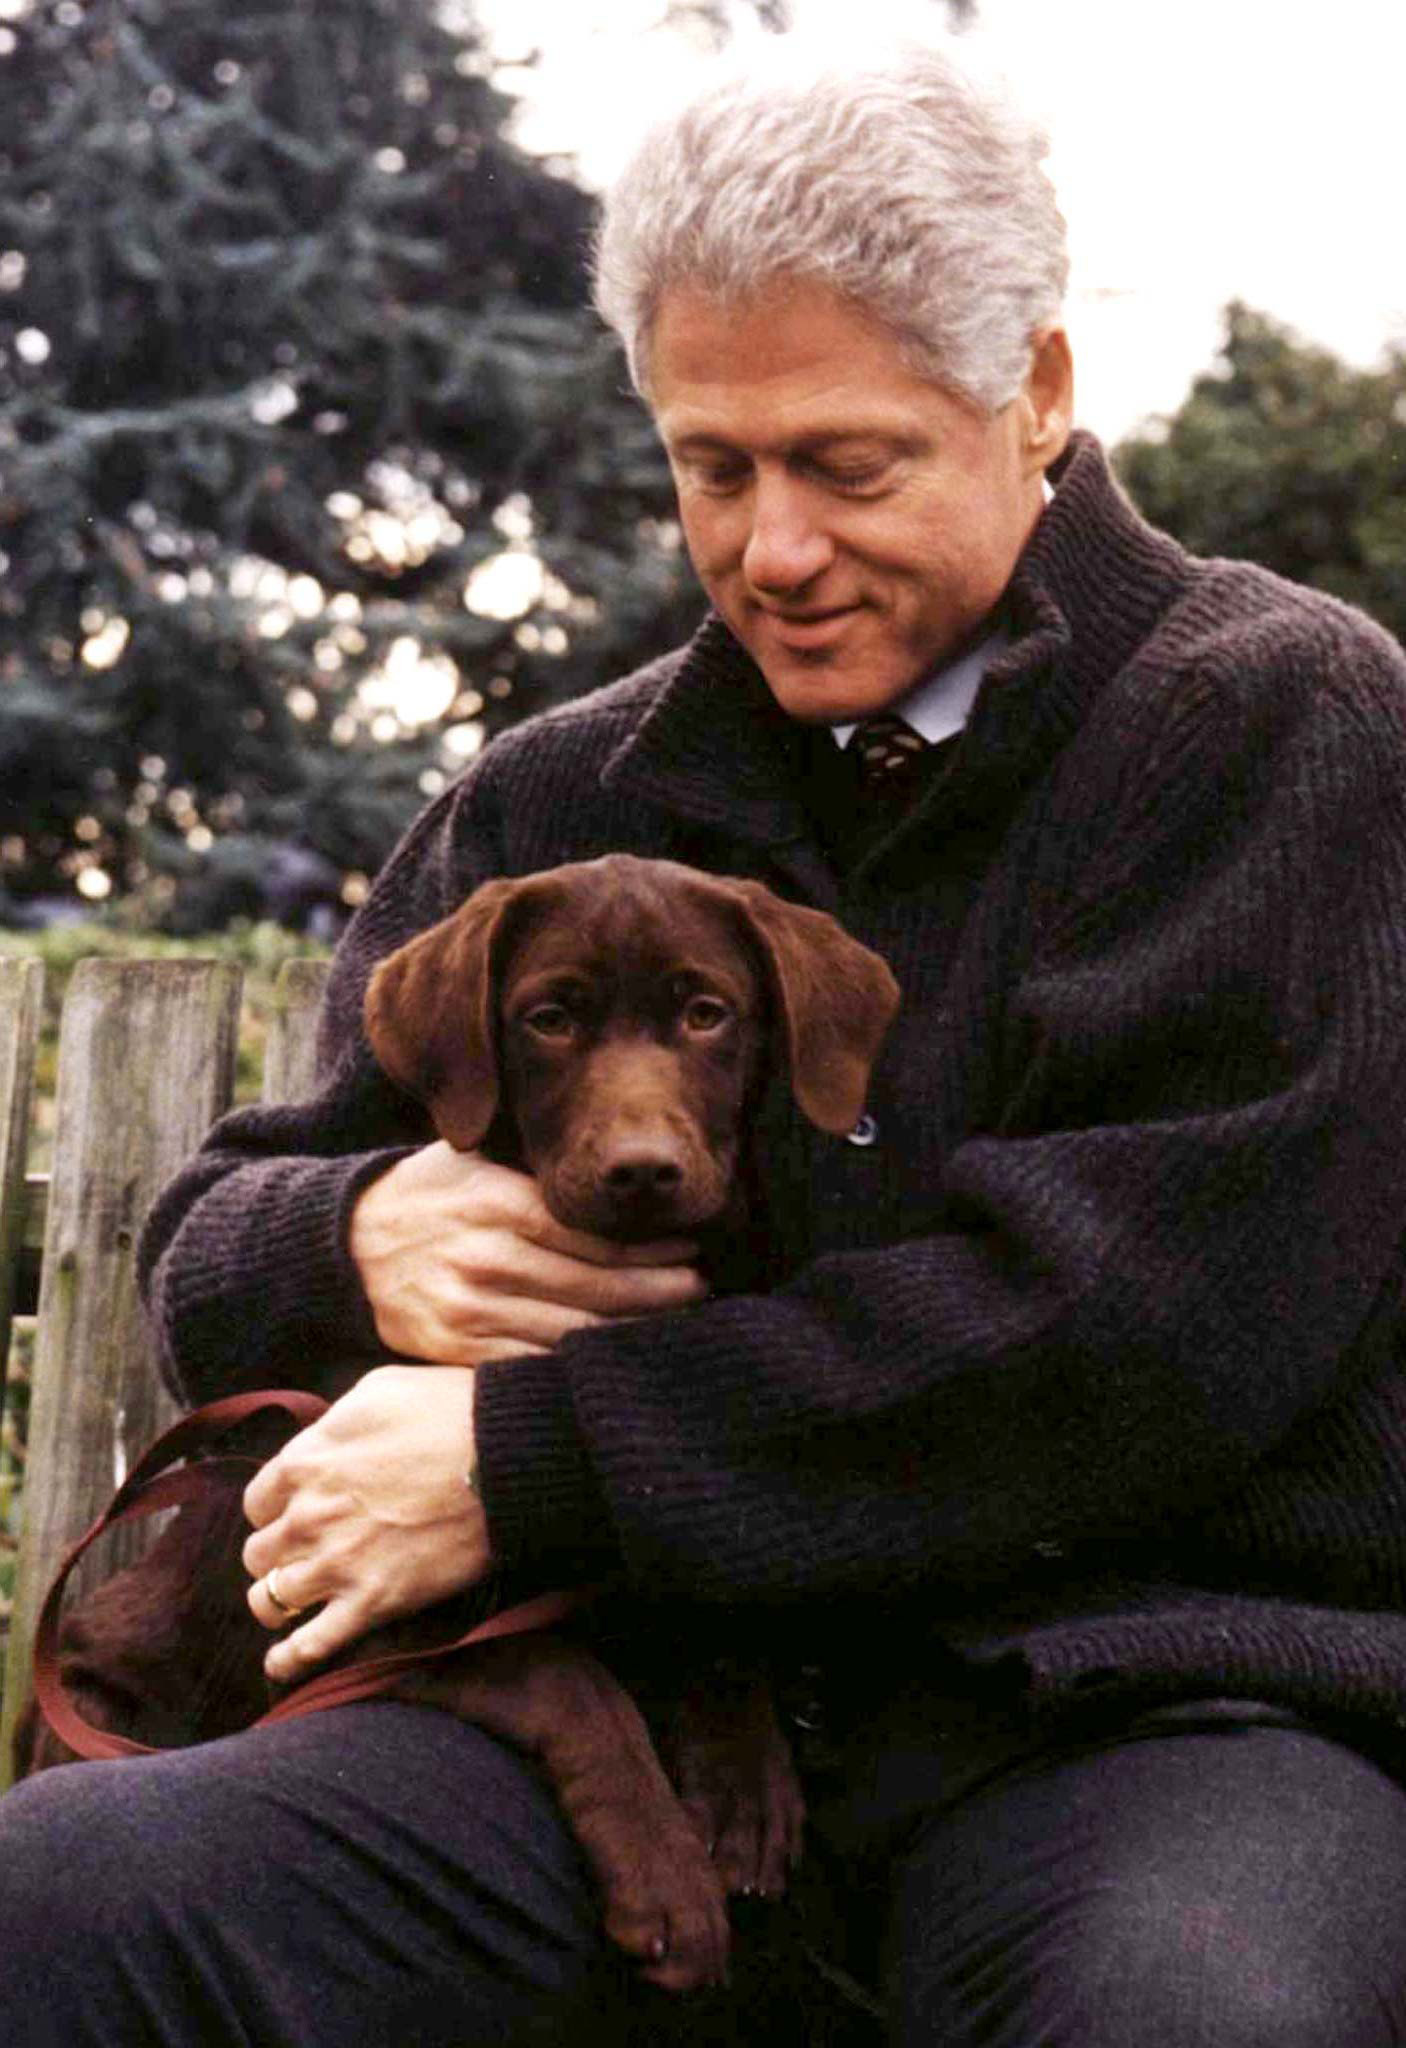 Bill Clinton holds his new dog, a chocolate Labrador pup, in a photo released December 9, 1997.